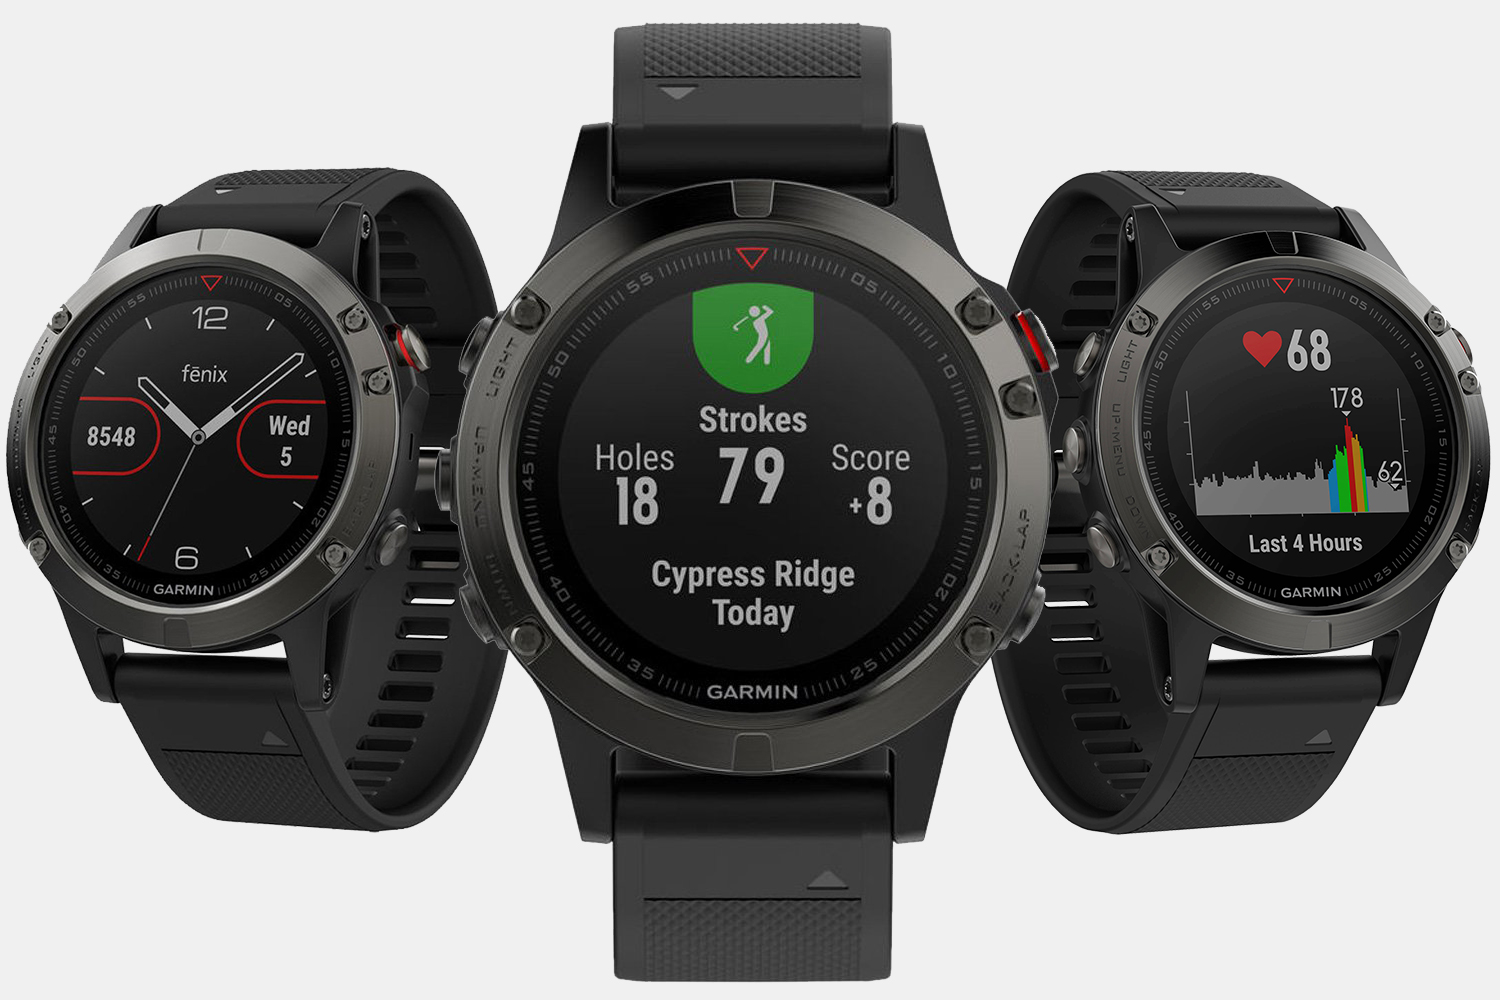 Garmin's Venerable All-Sports Smartwatch Is $150 Off, the Lowest Price We've Seen